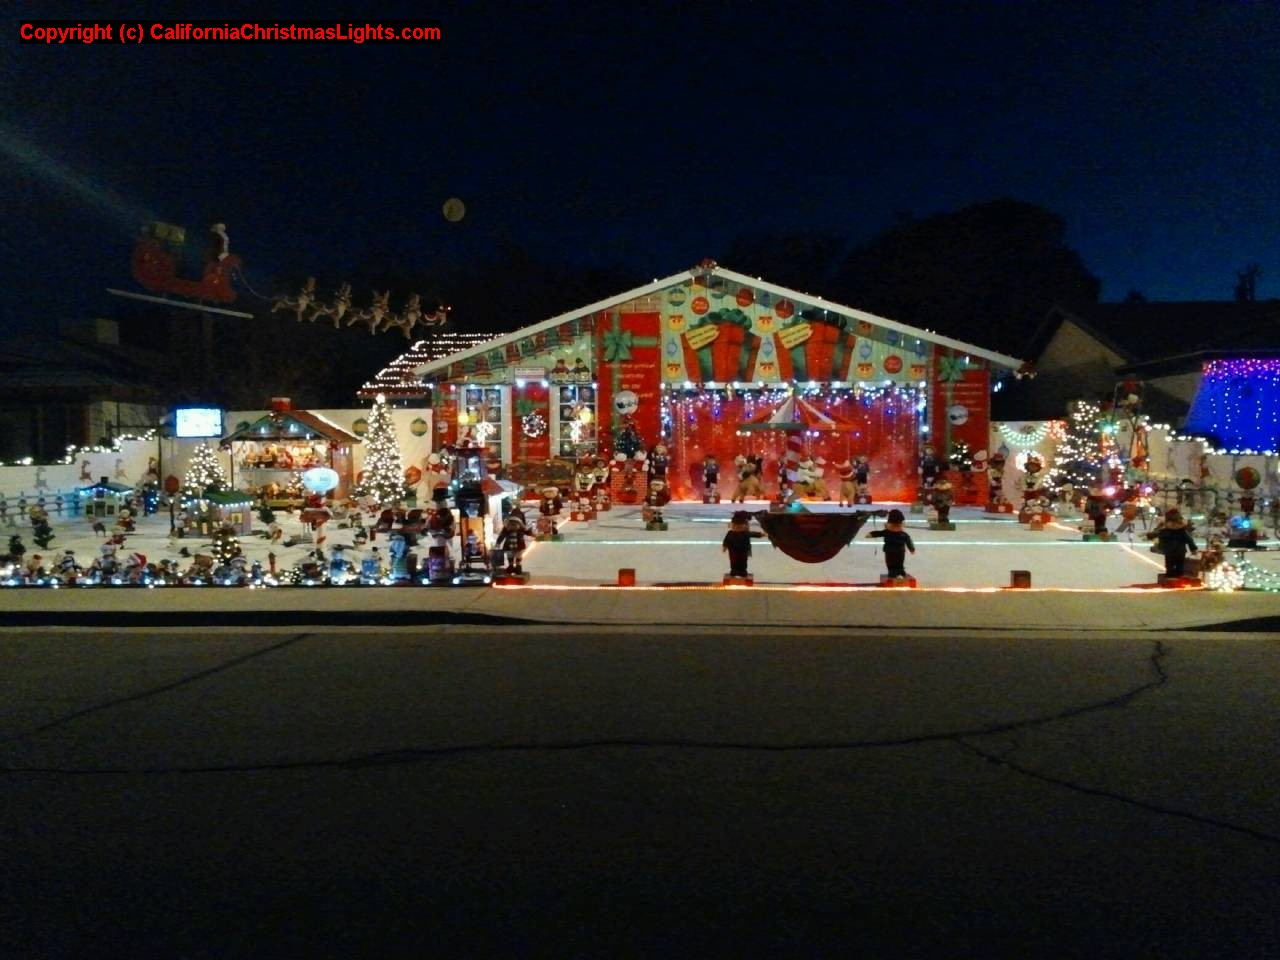 Ridgecrest Ca Christmas Lights 2020 Best Christmas Lights and Holiday Displays in Ridgecrest, Kern County